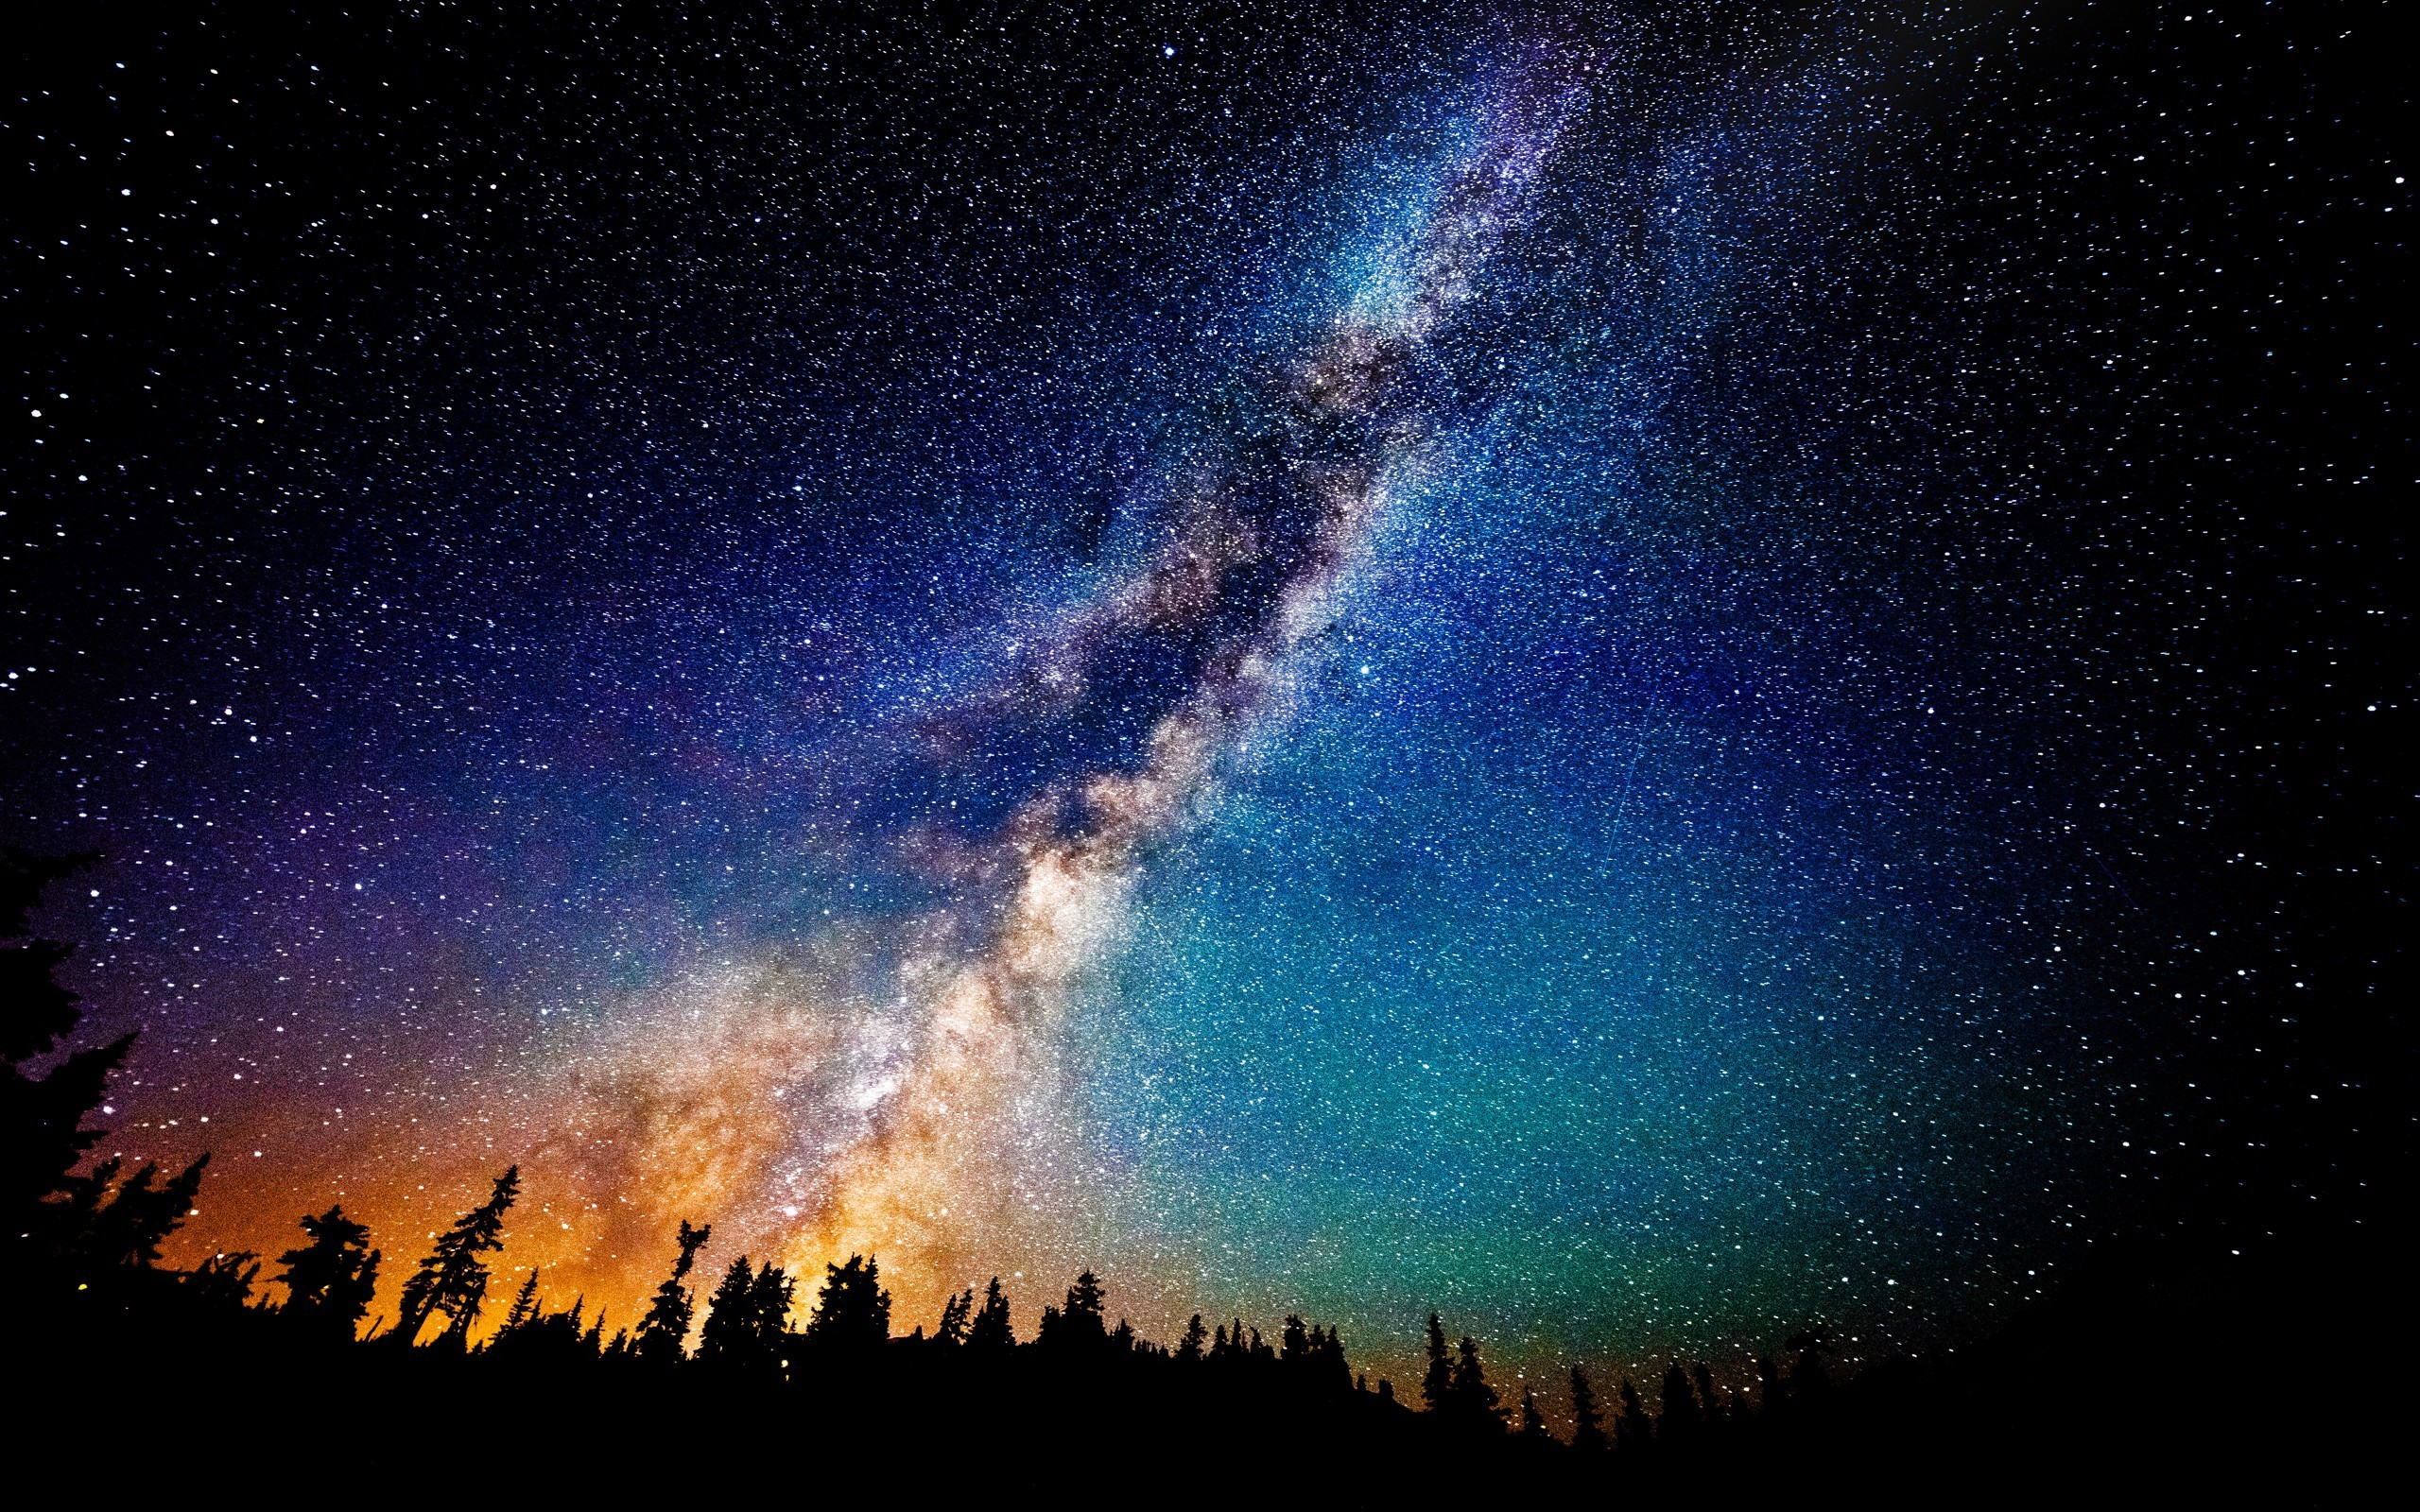 128 milky way hd wallpapers | background images - wallpaper abyss